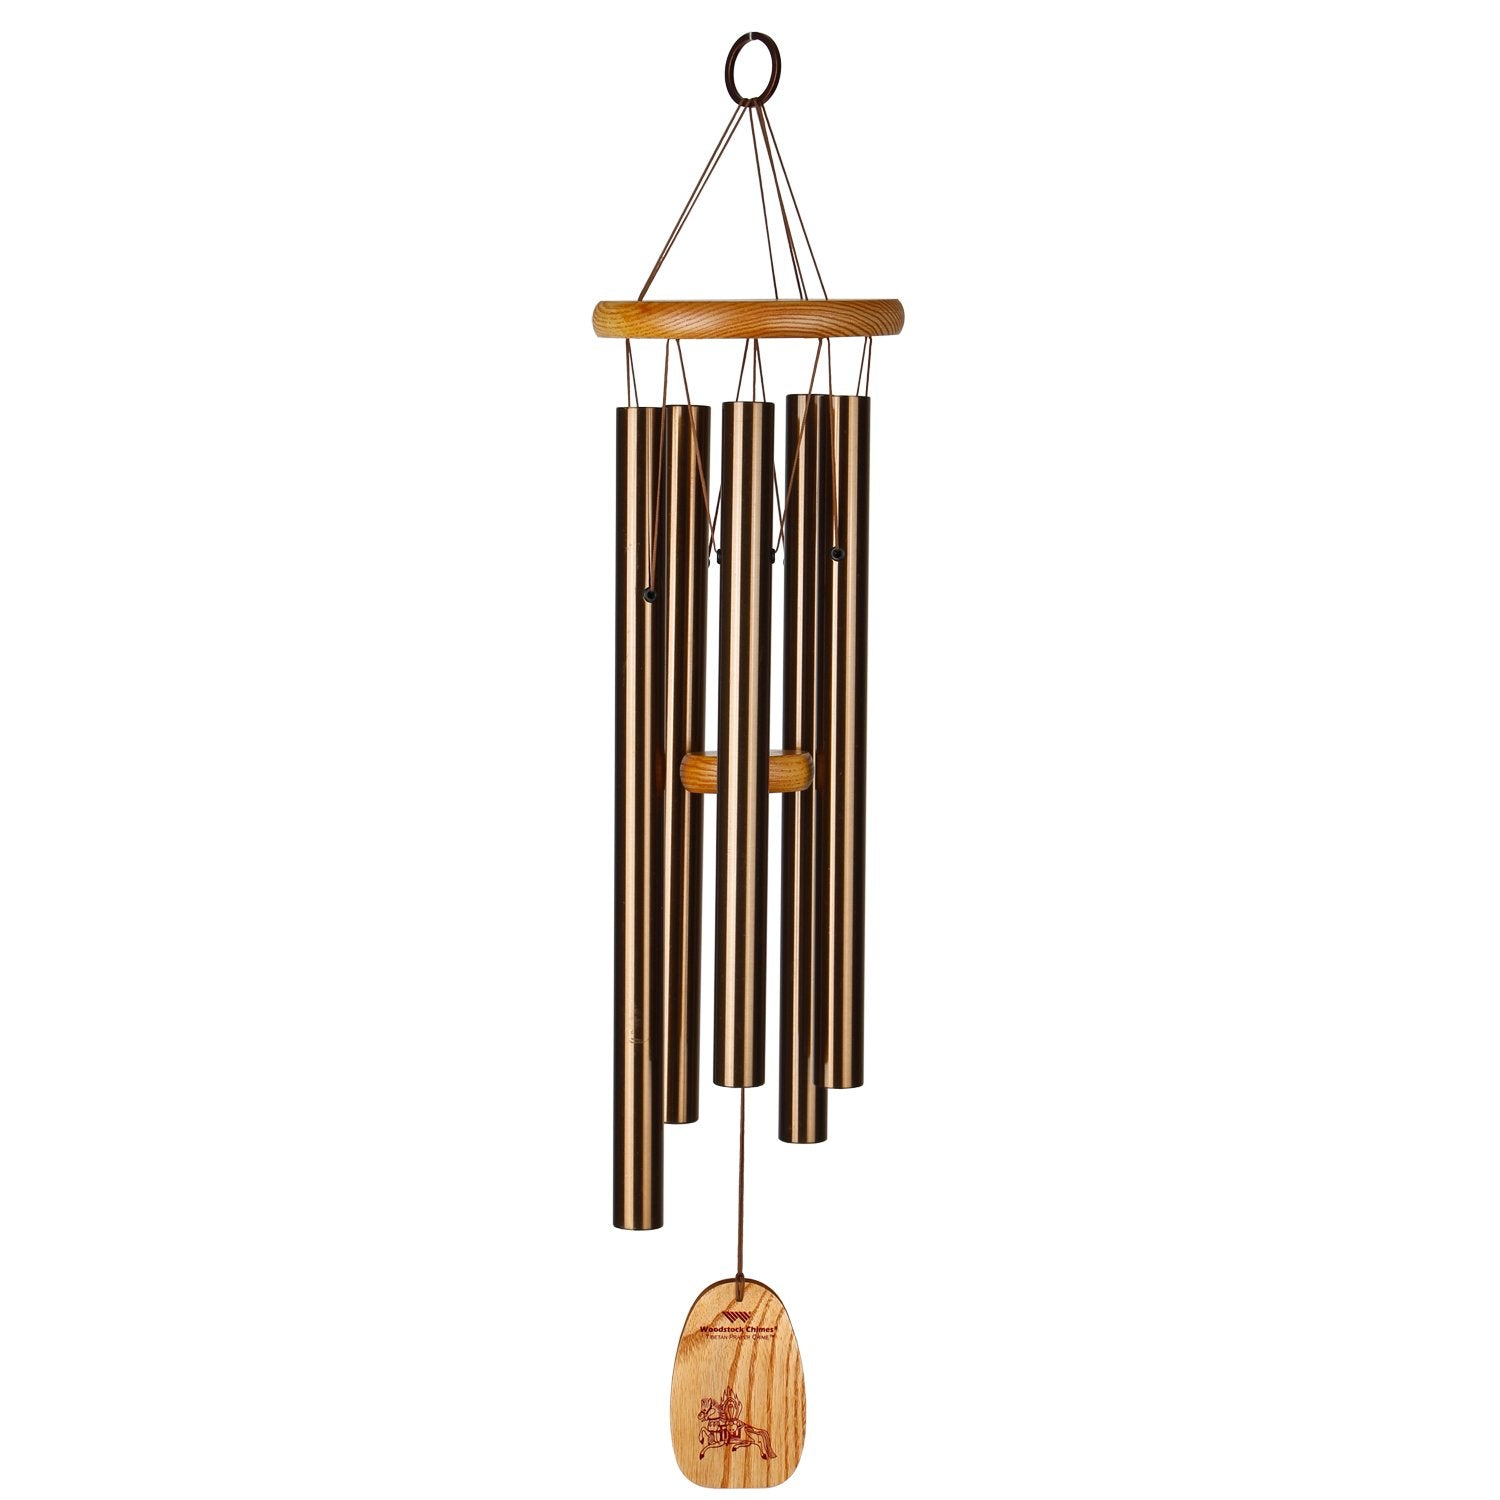 Tibetan Prayer Chime full product image